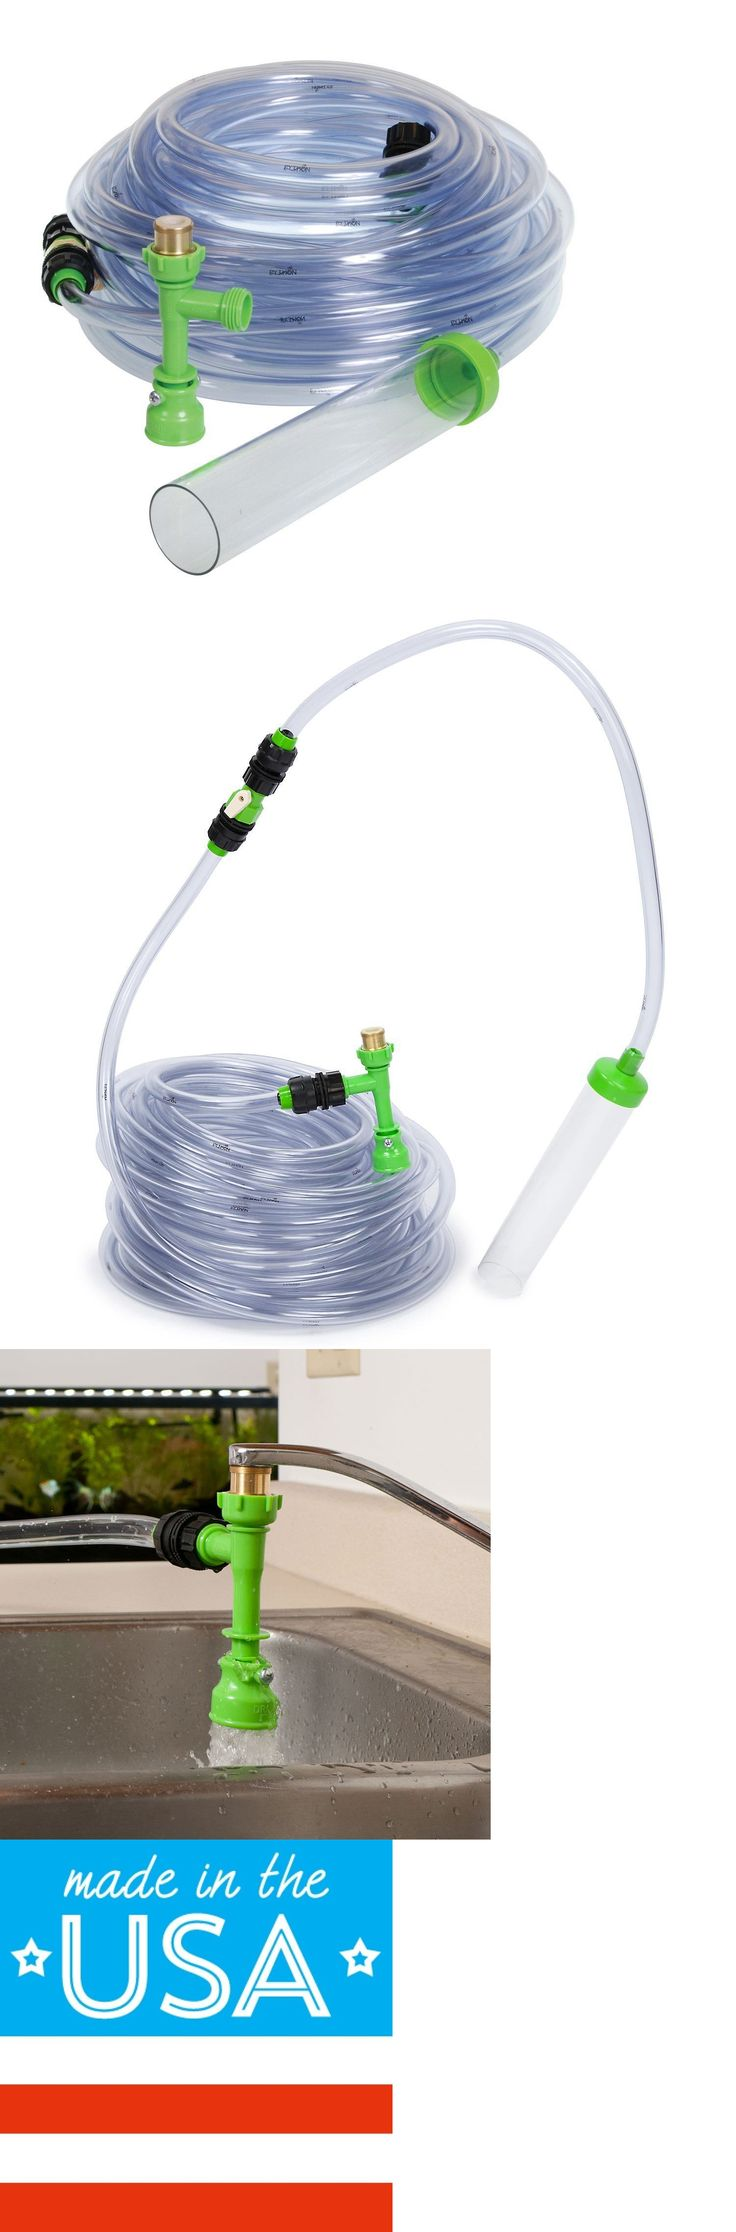 Jbj aquarium fish tank siphon gravel vacuum cleaner - Cleaning And Maintenance 148983 Python Products No Spill Clean And Fill Aquarium Maintenance System 25ft